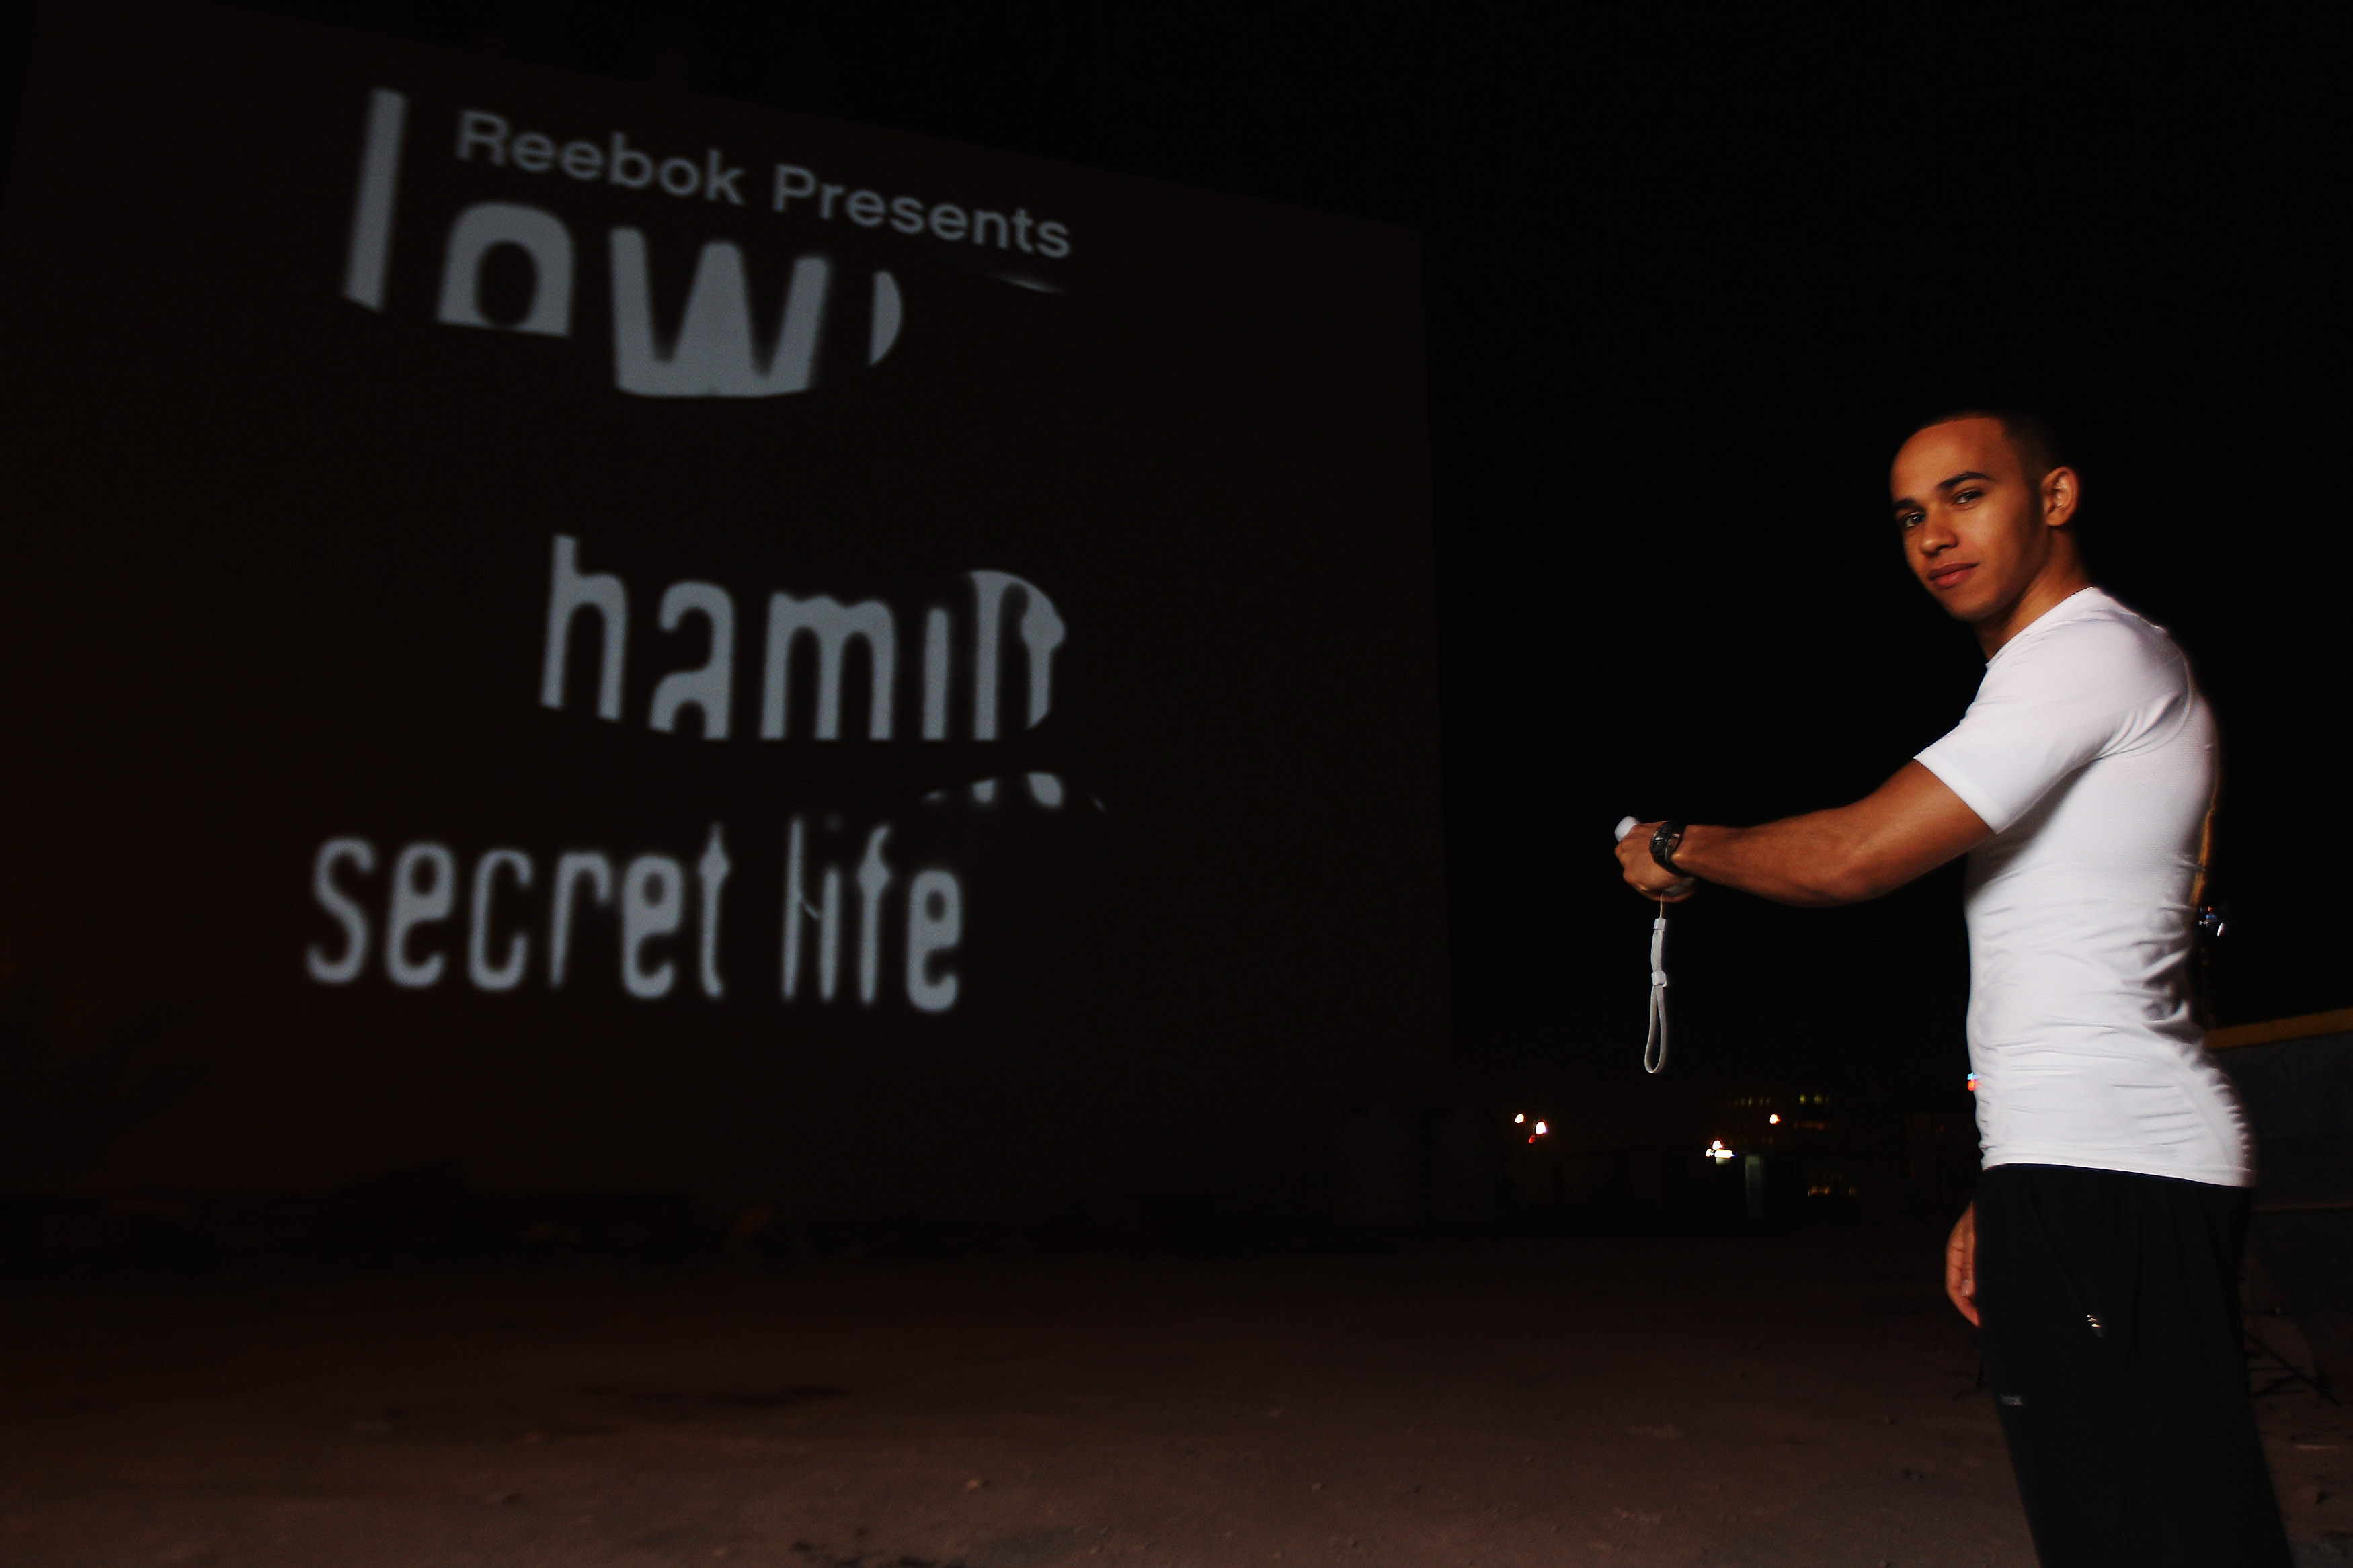 Lewis Hamilton: Secret Life Launch Projection in Bahrain